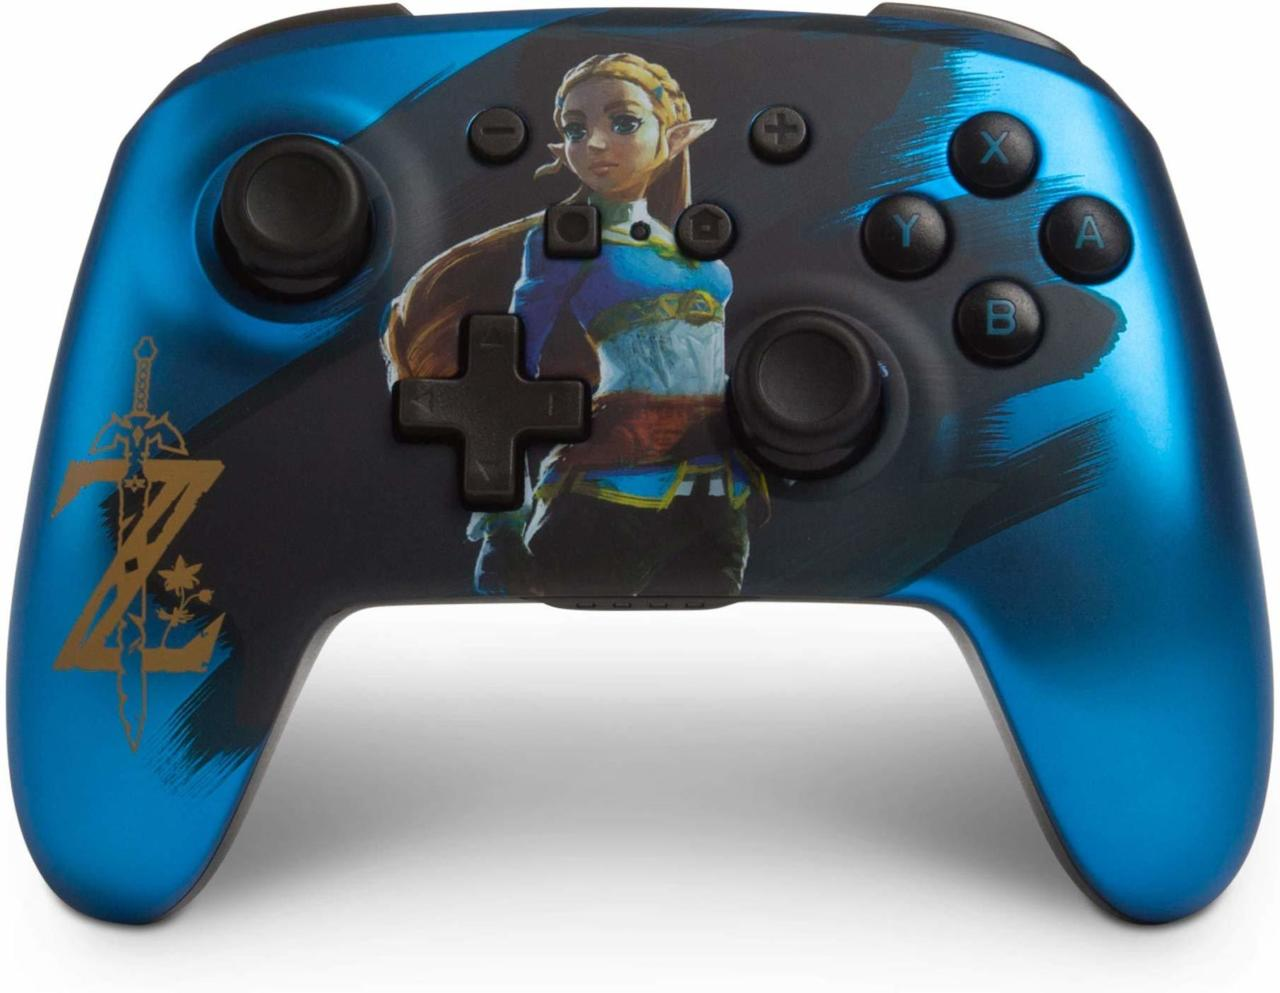 New Nintendo Switch Pro Controller designs from PowerA